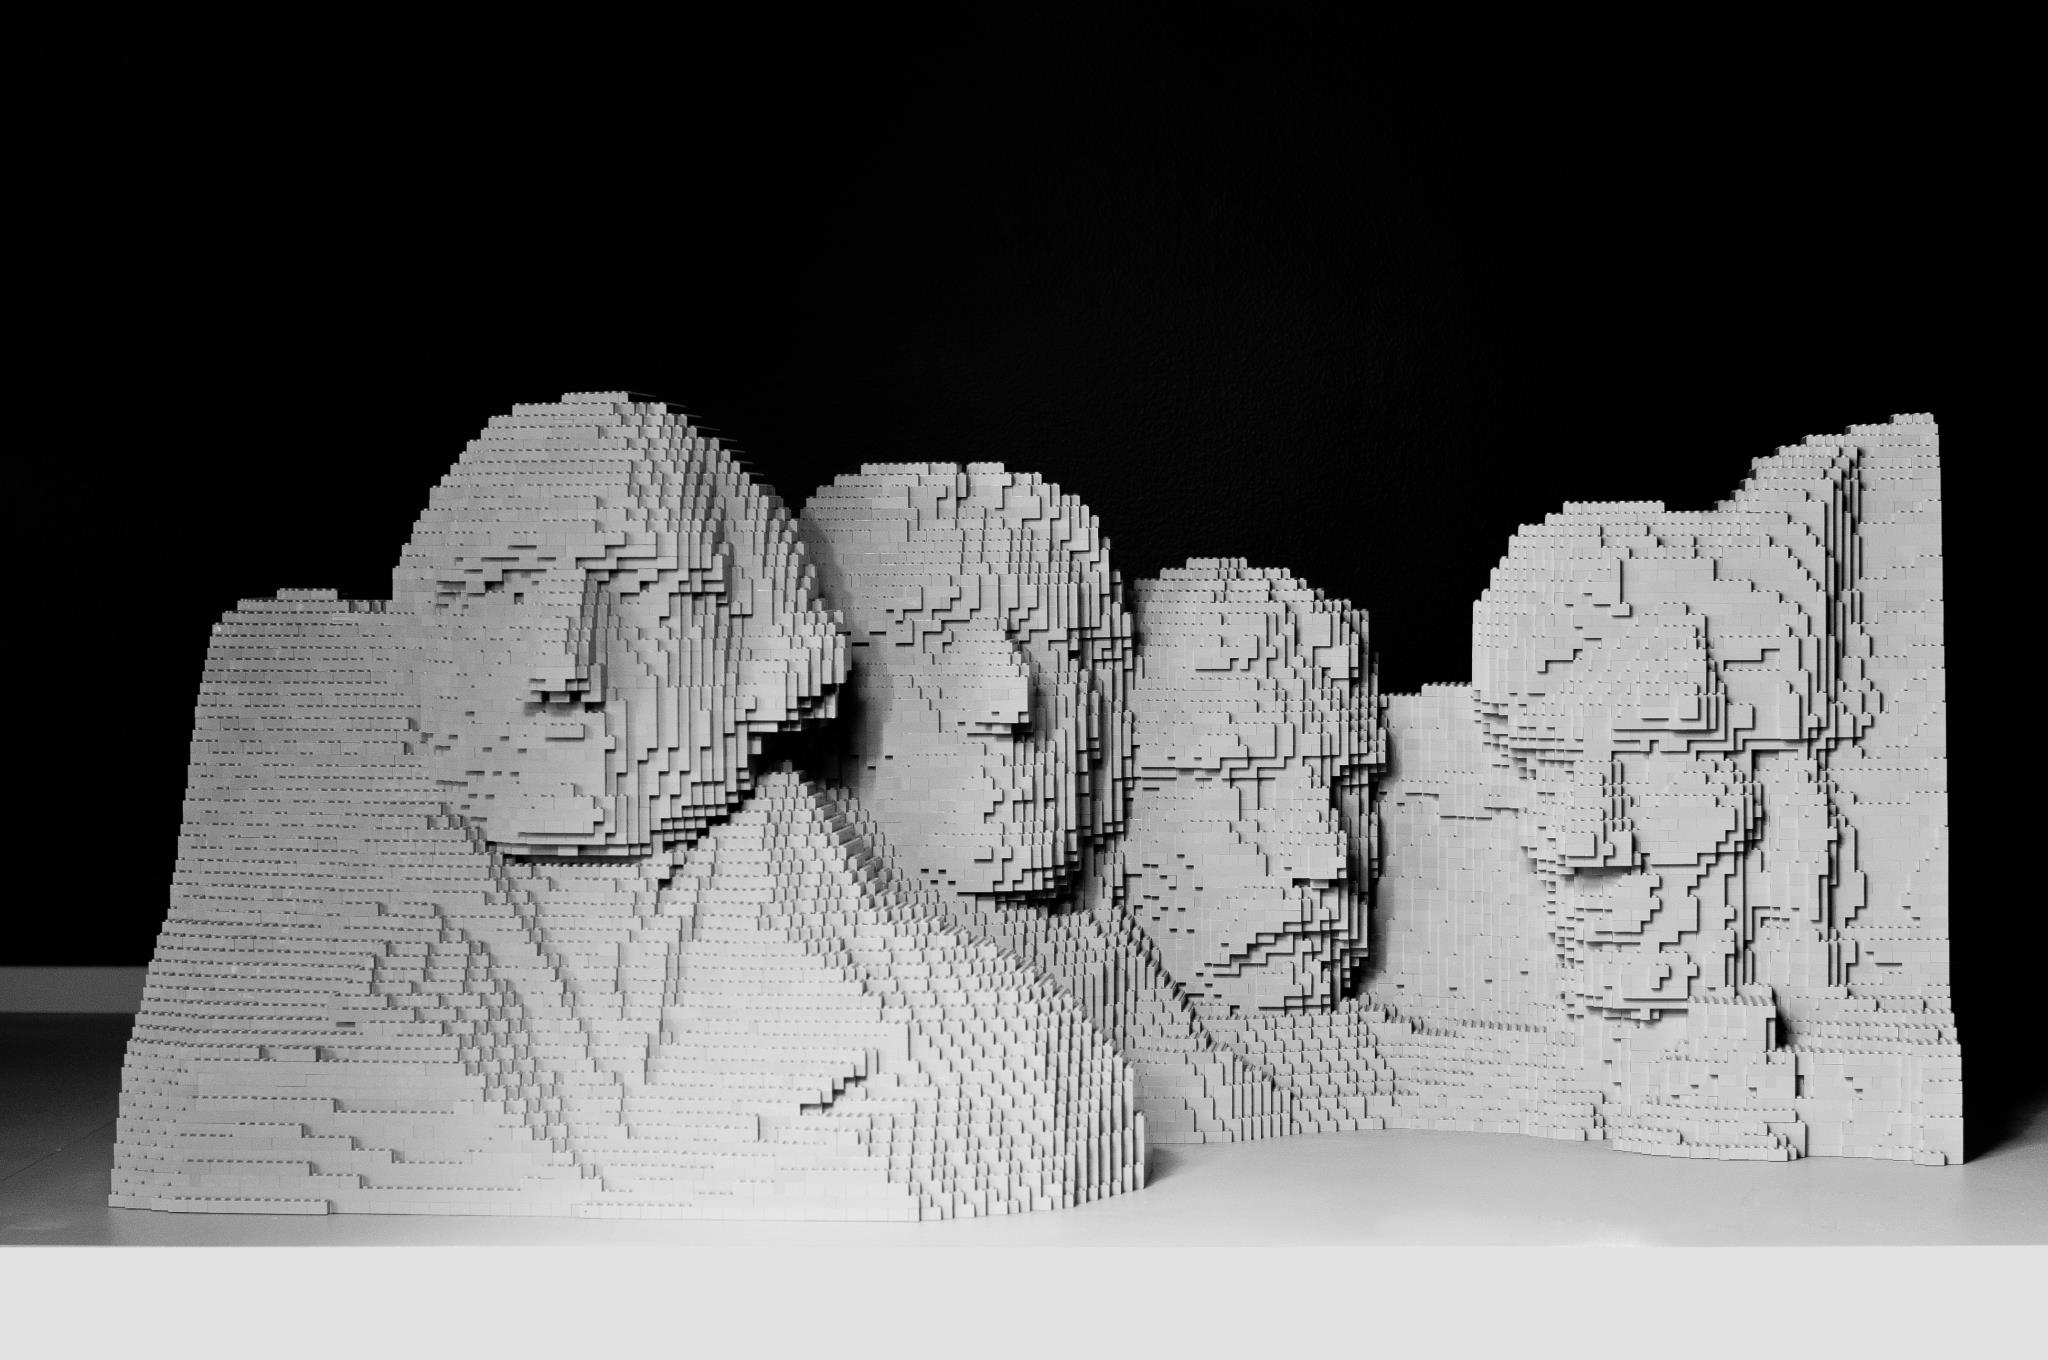 mt rushmore The Art of the Brick: Outstanding LEGO Artworks by Nathan Sawaya